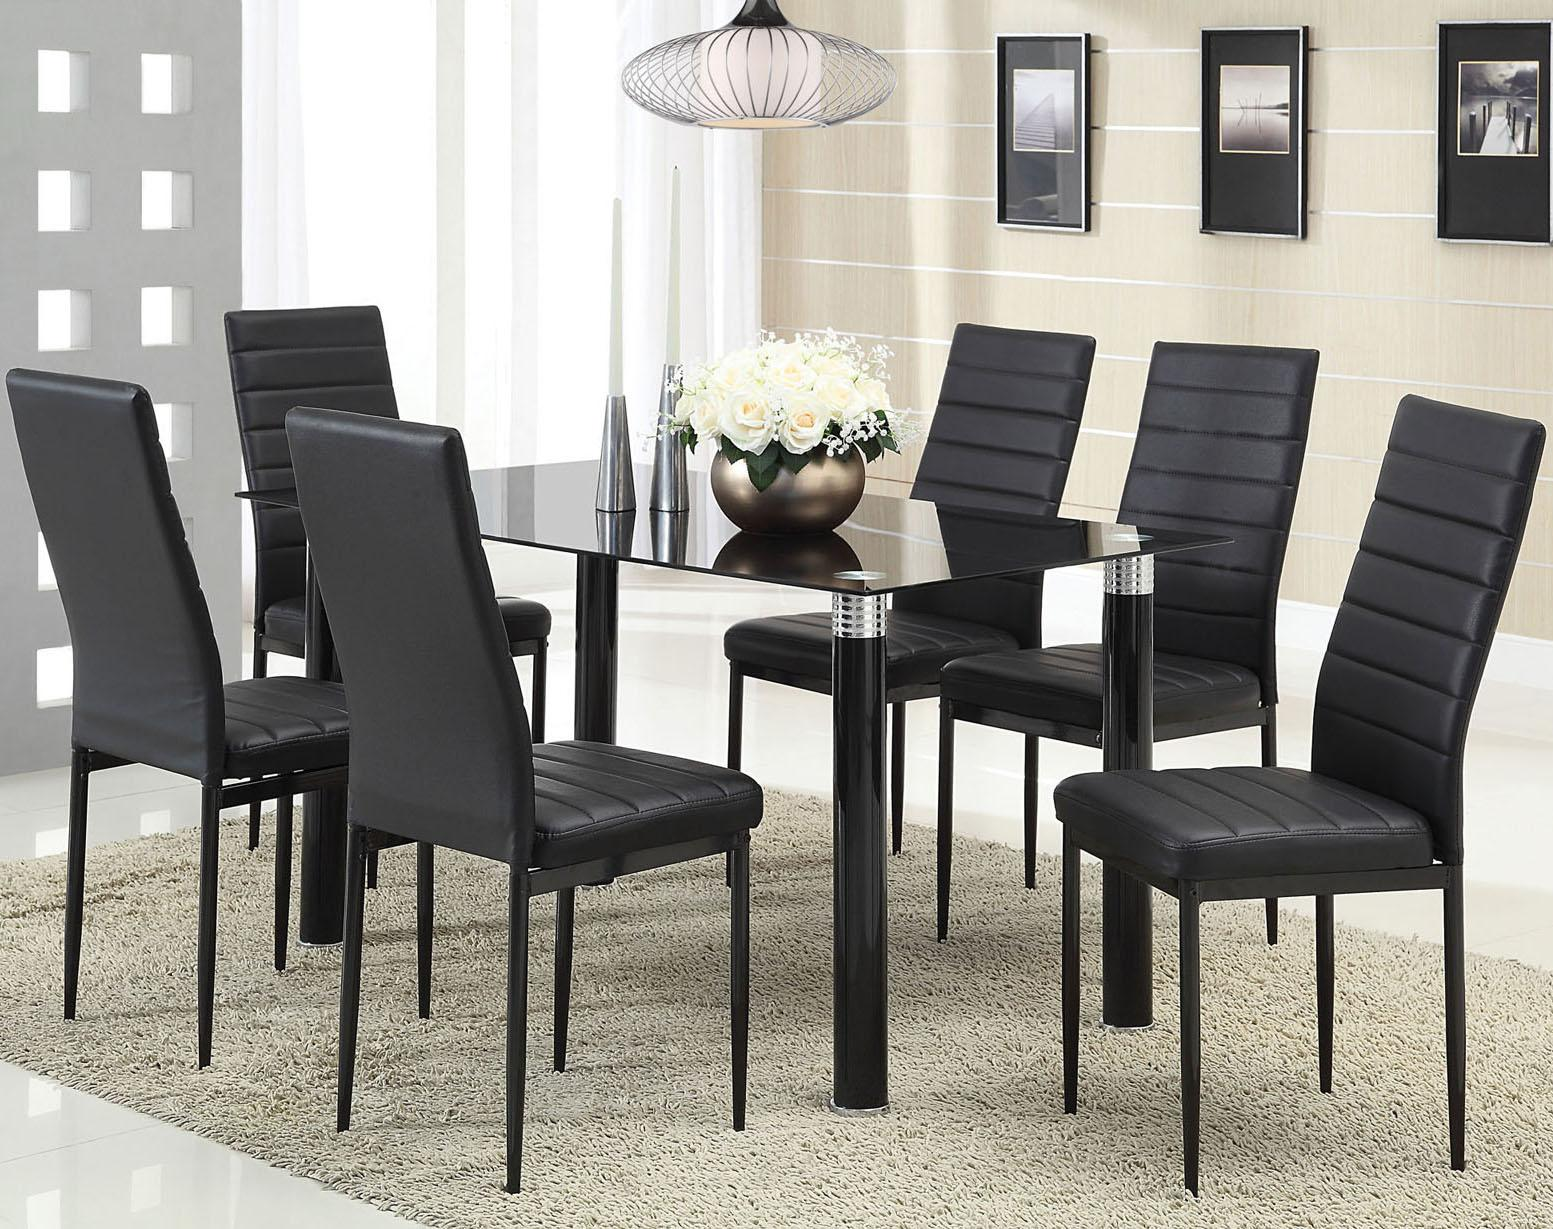 Riggan Black Leg Table with Black Vinyl Chairs Set by Acme Furniture at Rooms for Less